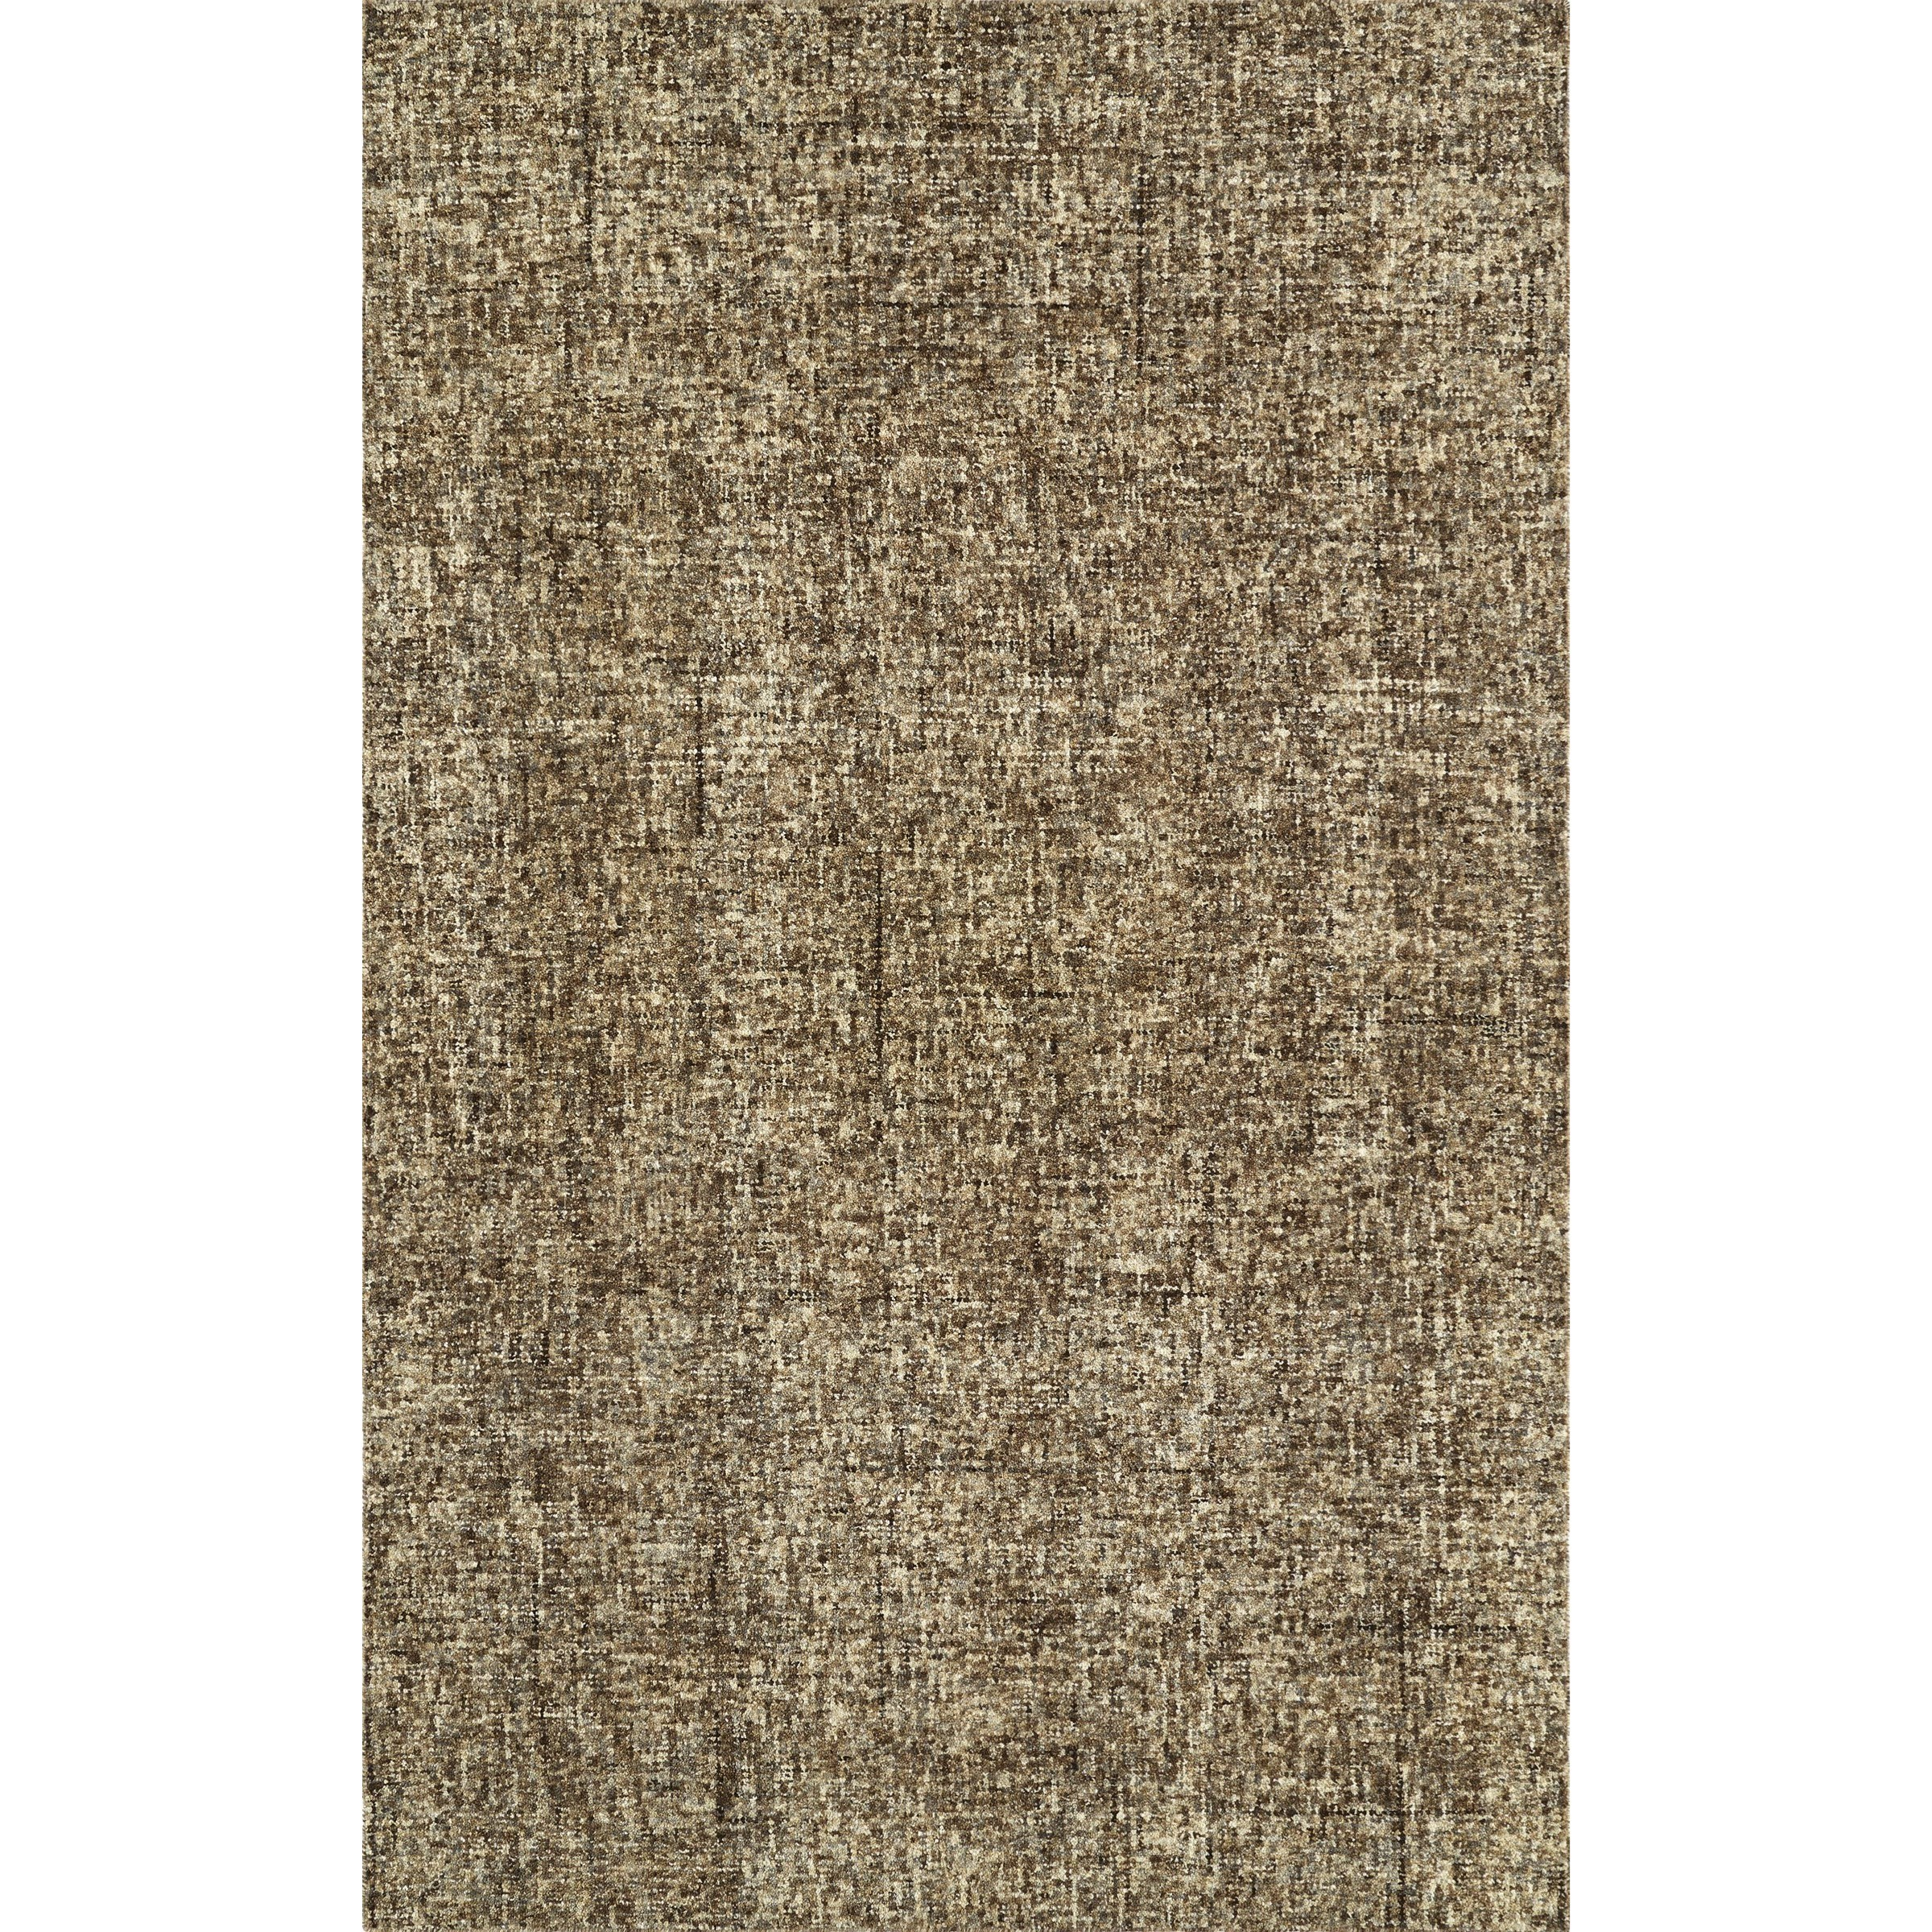 "Calisa Coffee 5'X7'6"" Rug by Dalyn at Darvin Furniture"